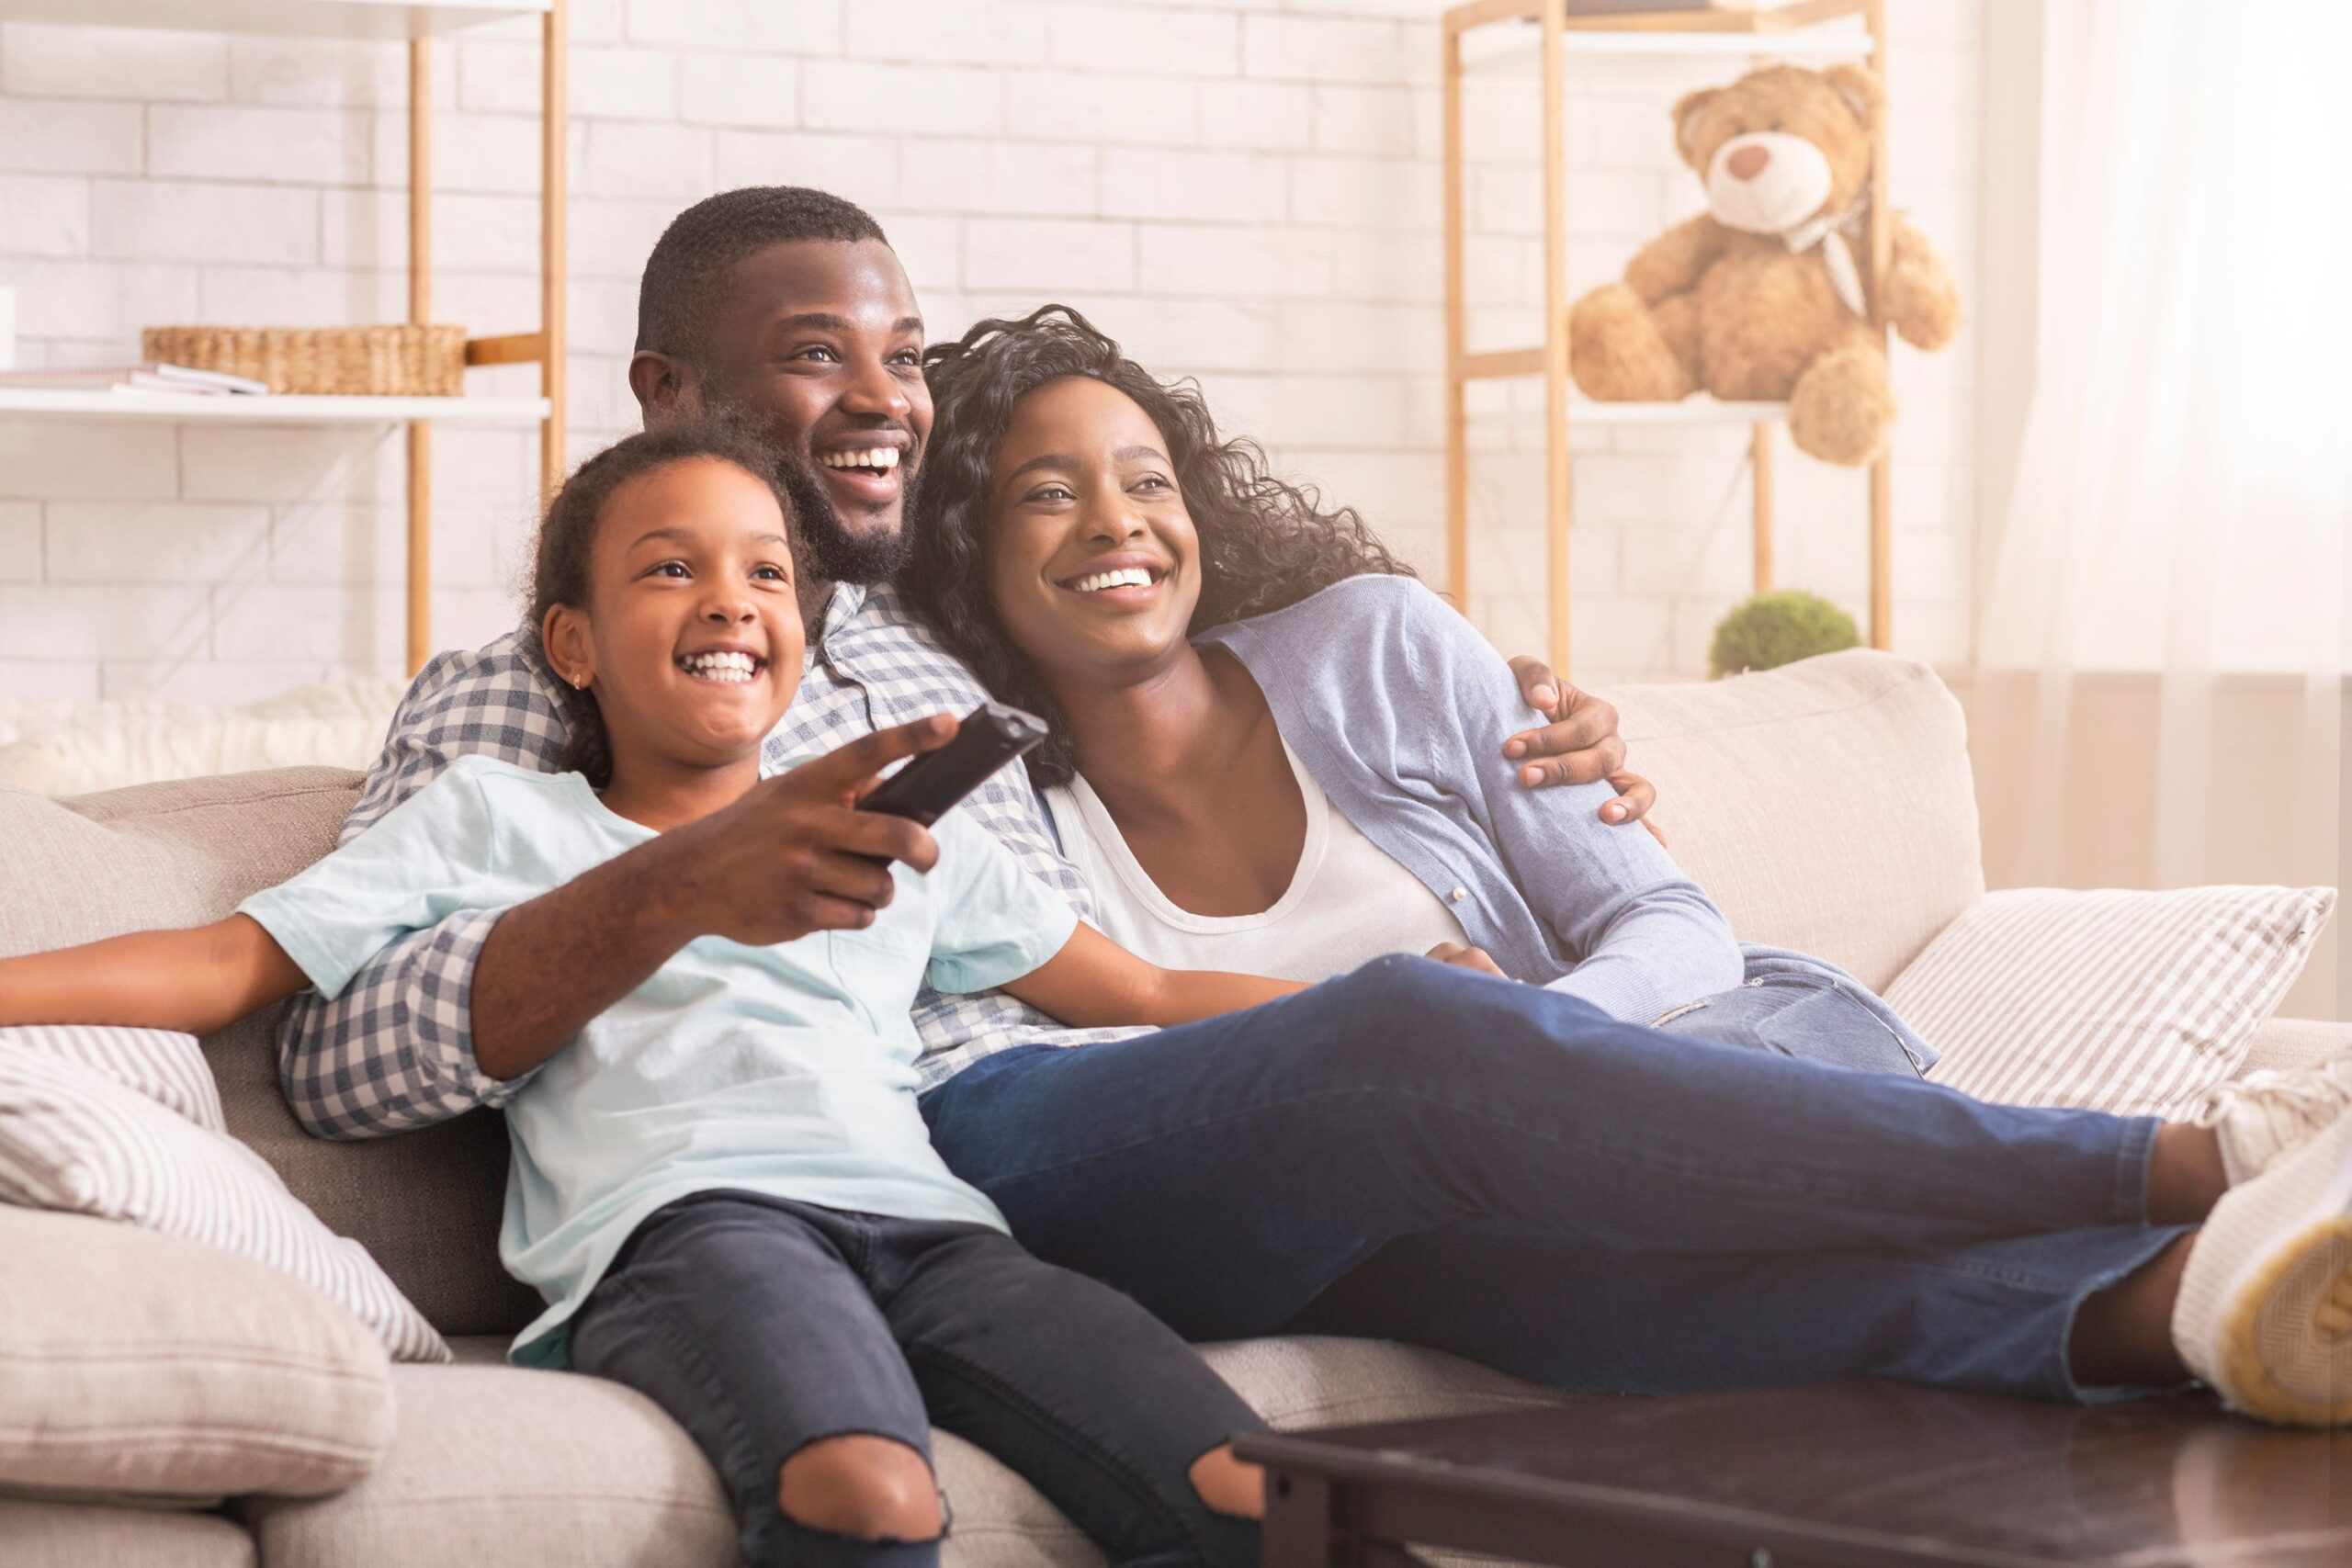 I've Really Enjoyed Being Home With My Family Since Losing My Job – Now What?